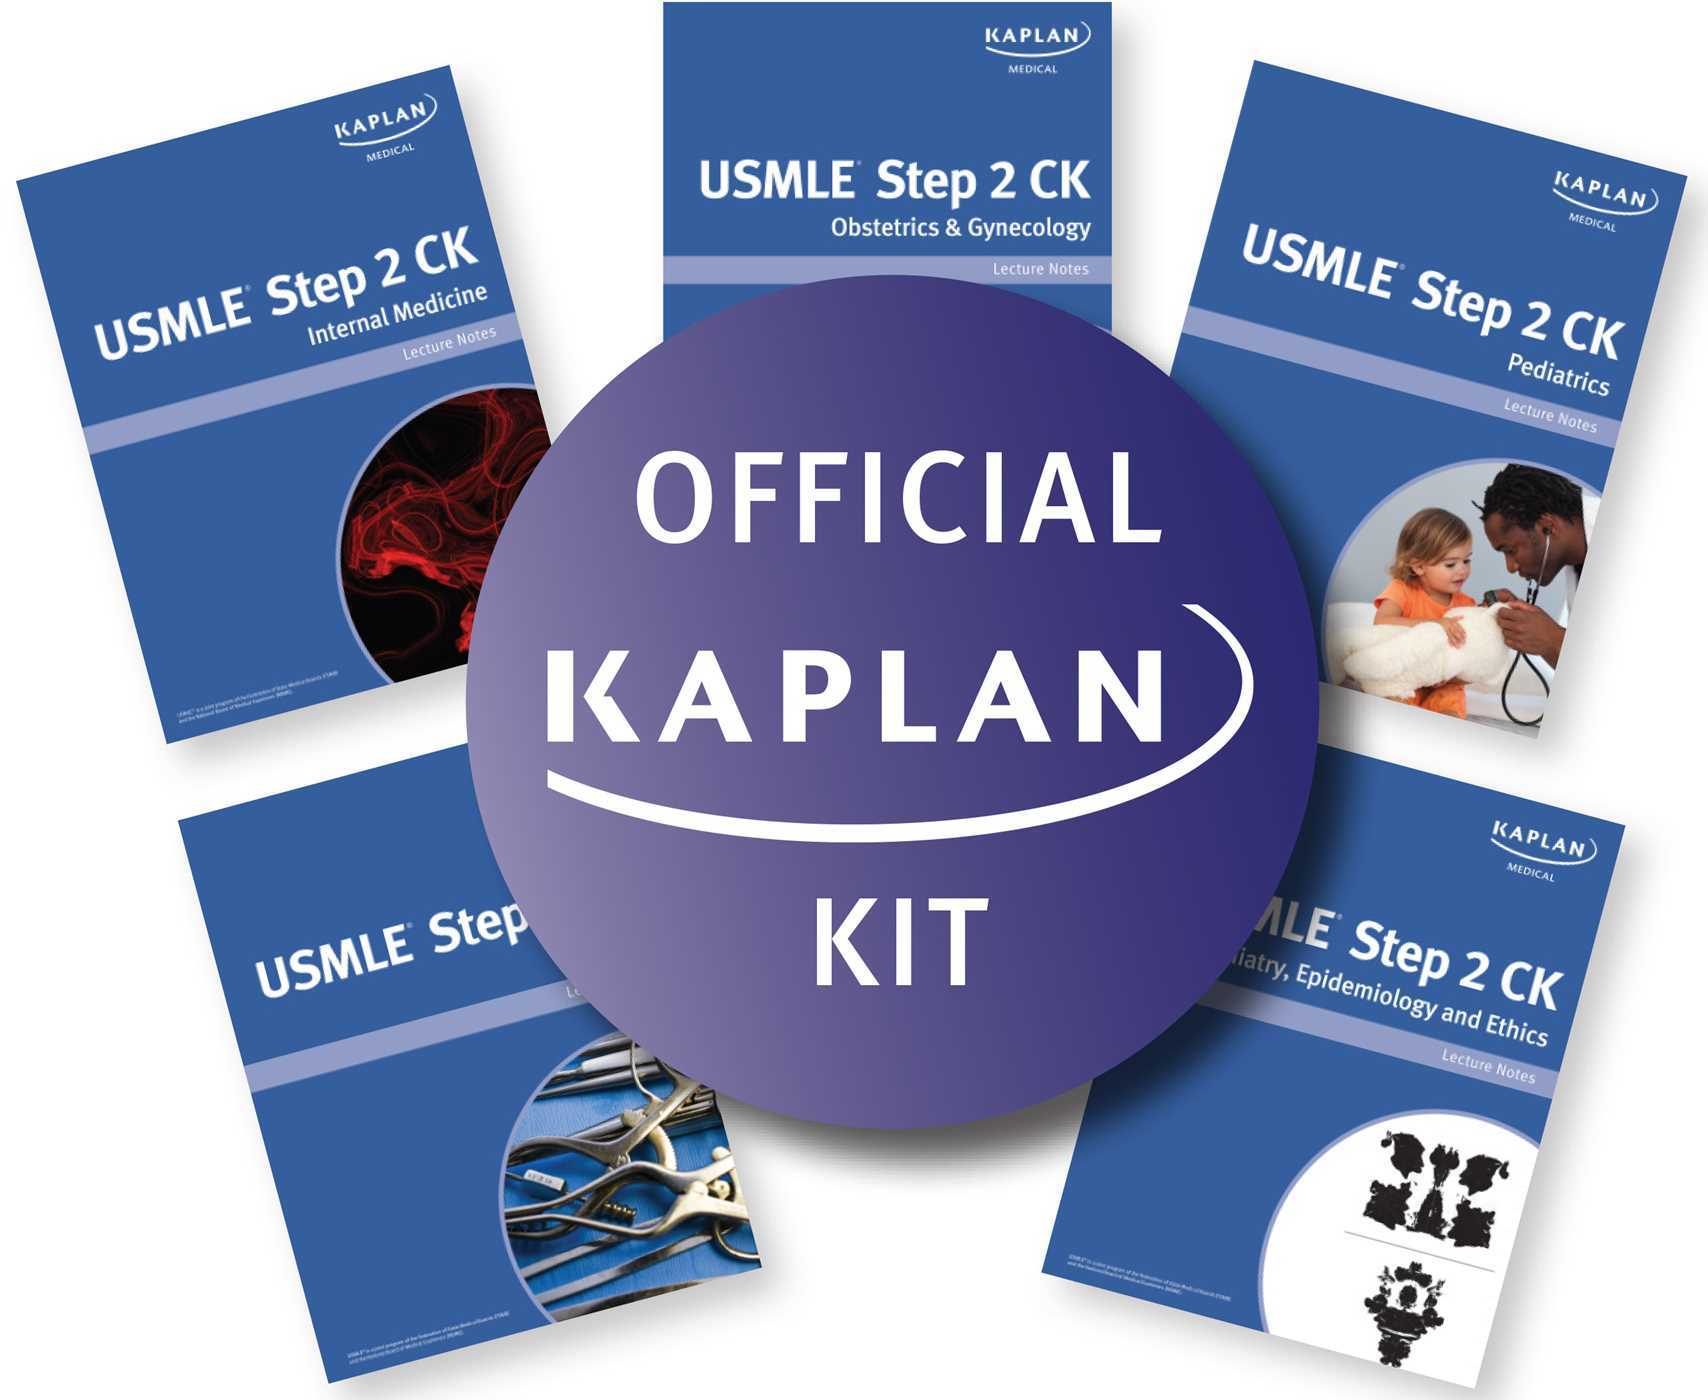 USMLE Step 2 CK Lecture Notes 2014  by  Kaplan